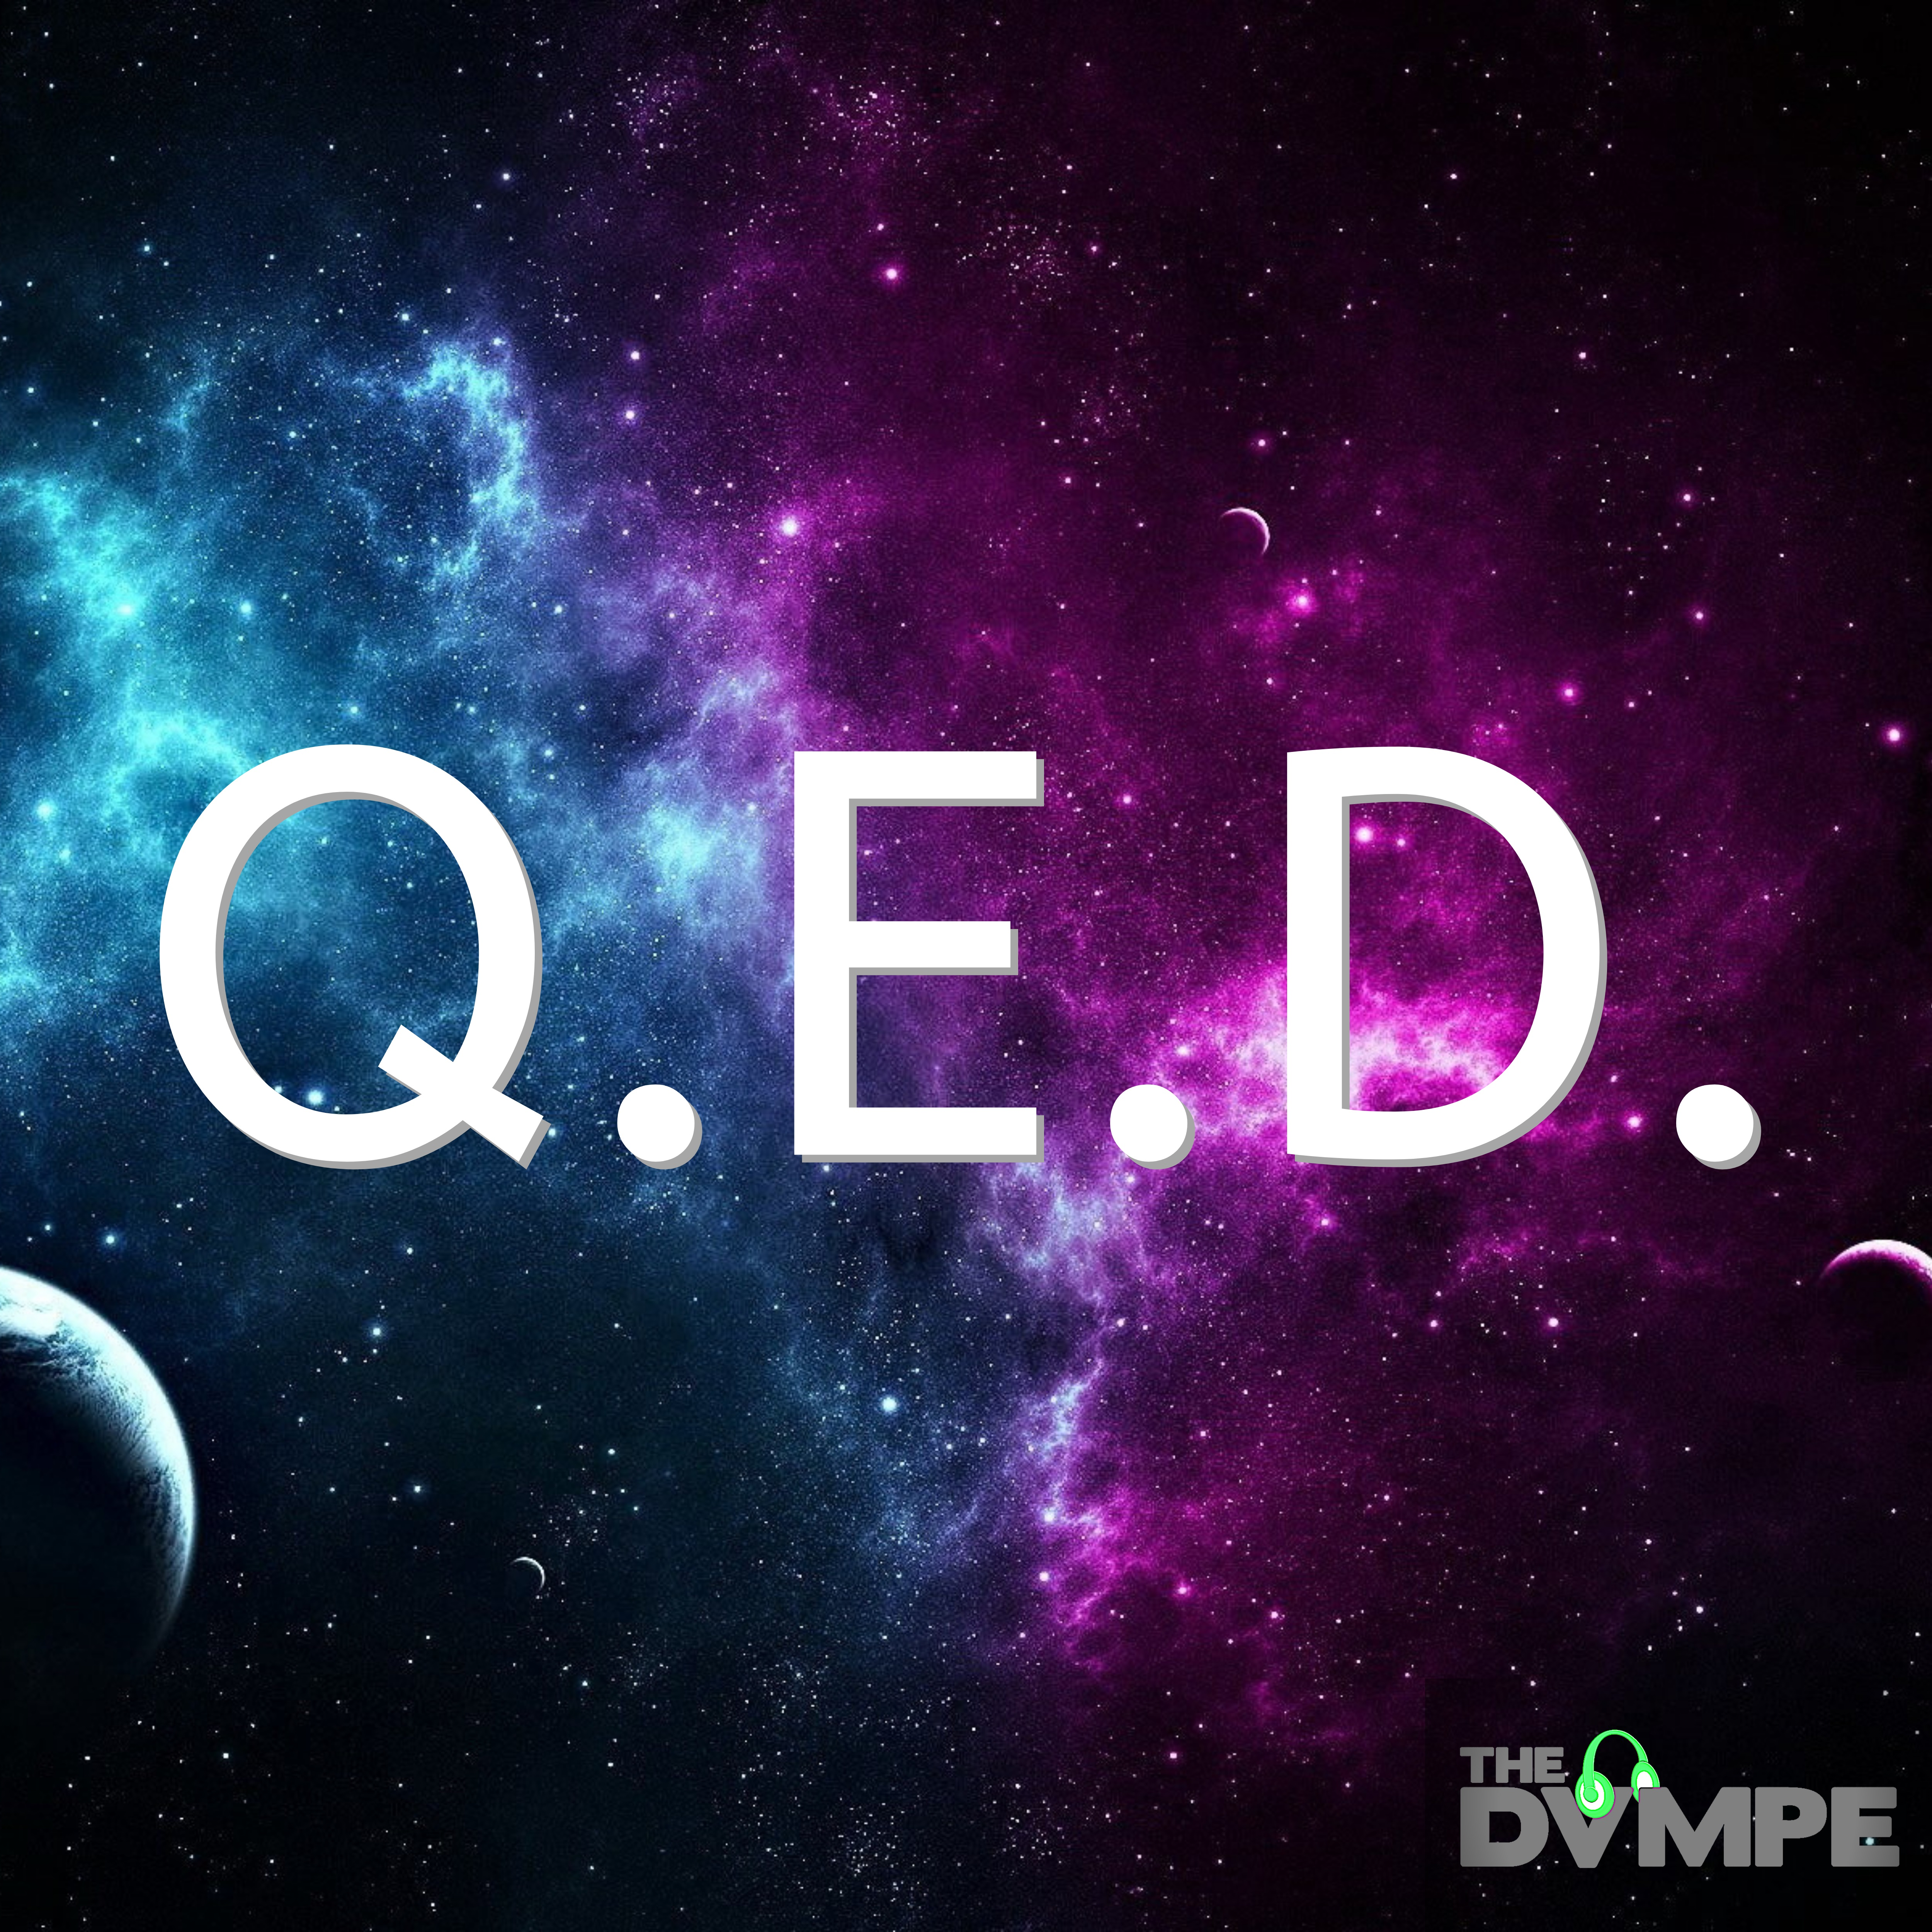 Q.E.D.